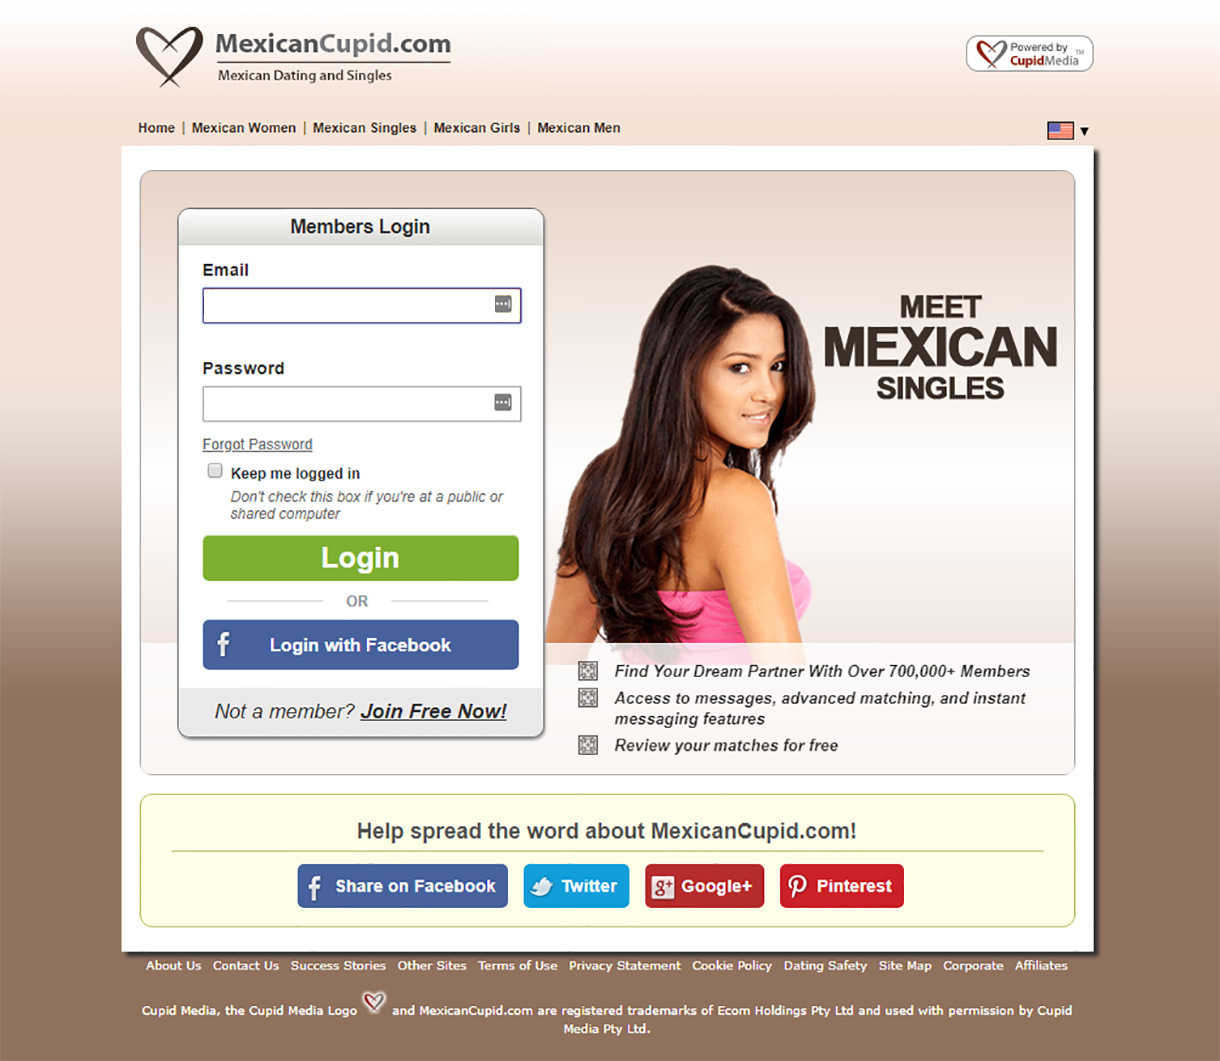 Mexican Cupid Review September 2019: Scam or real dates